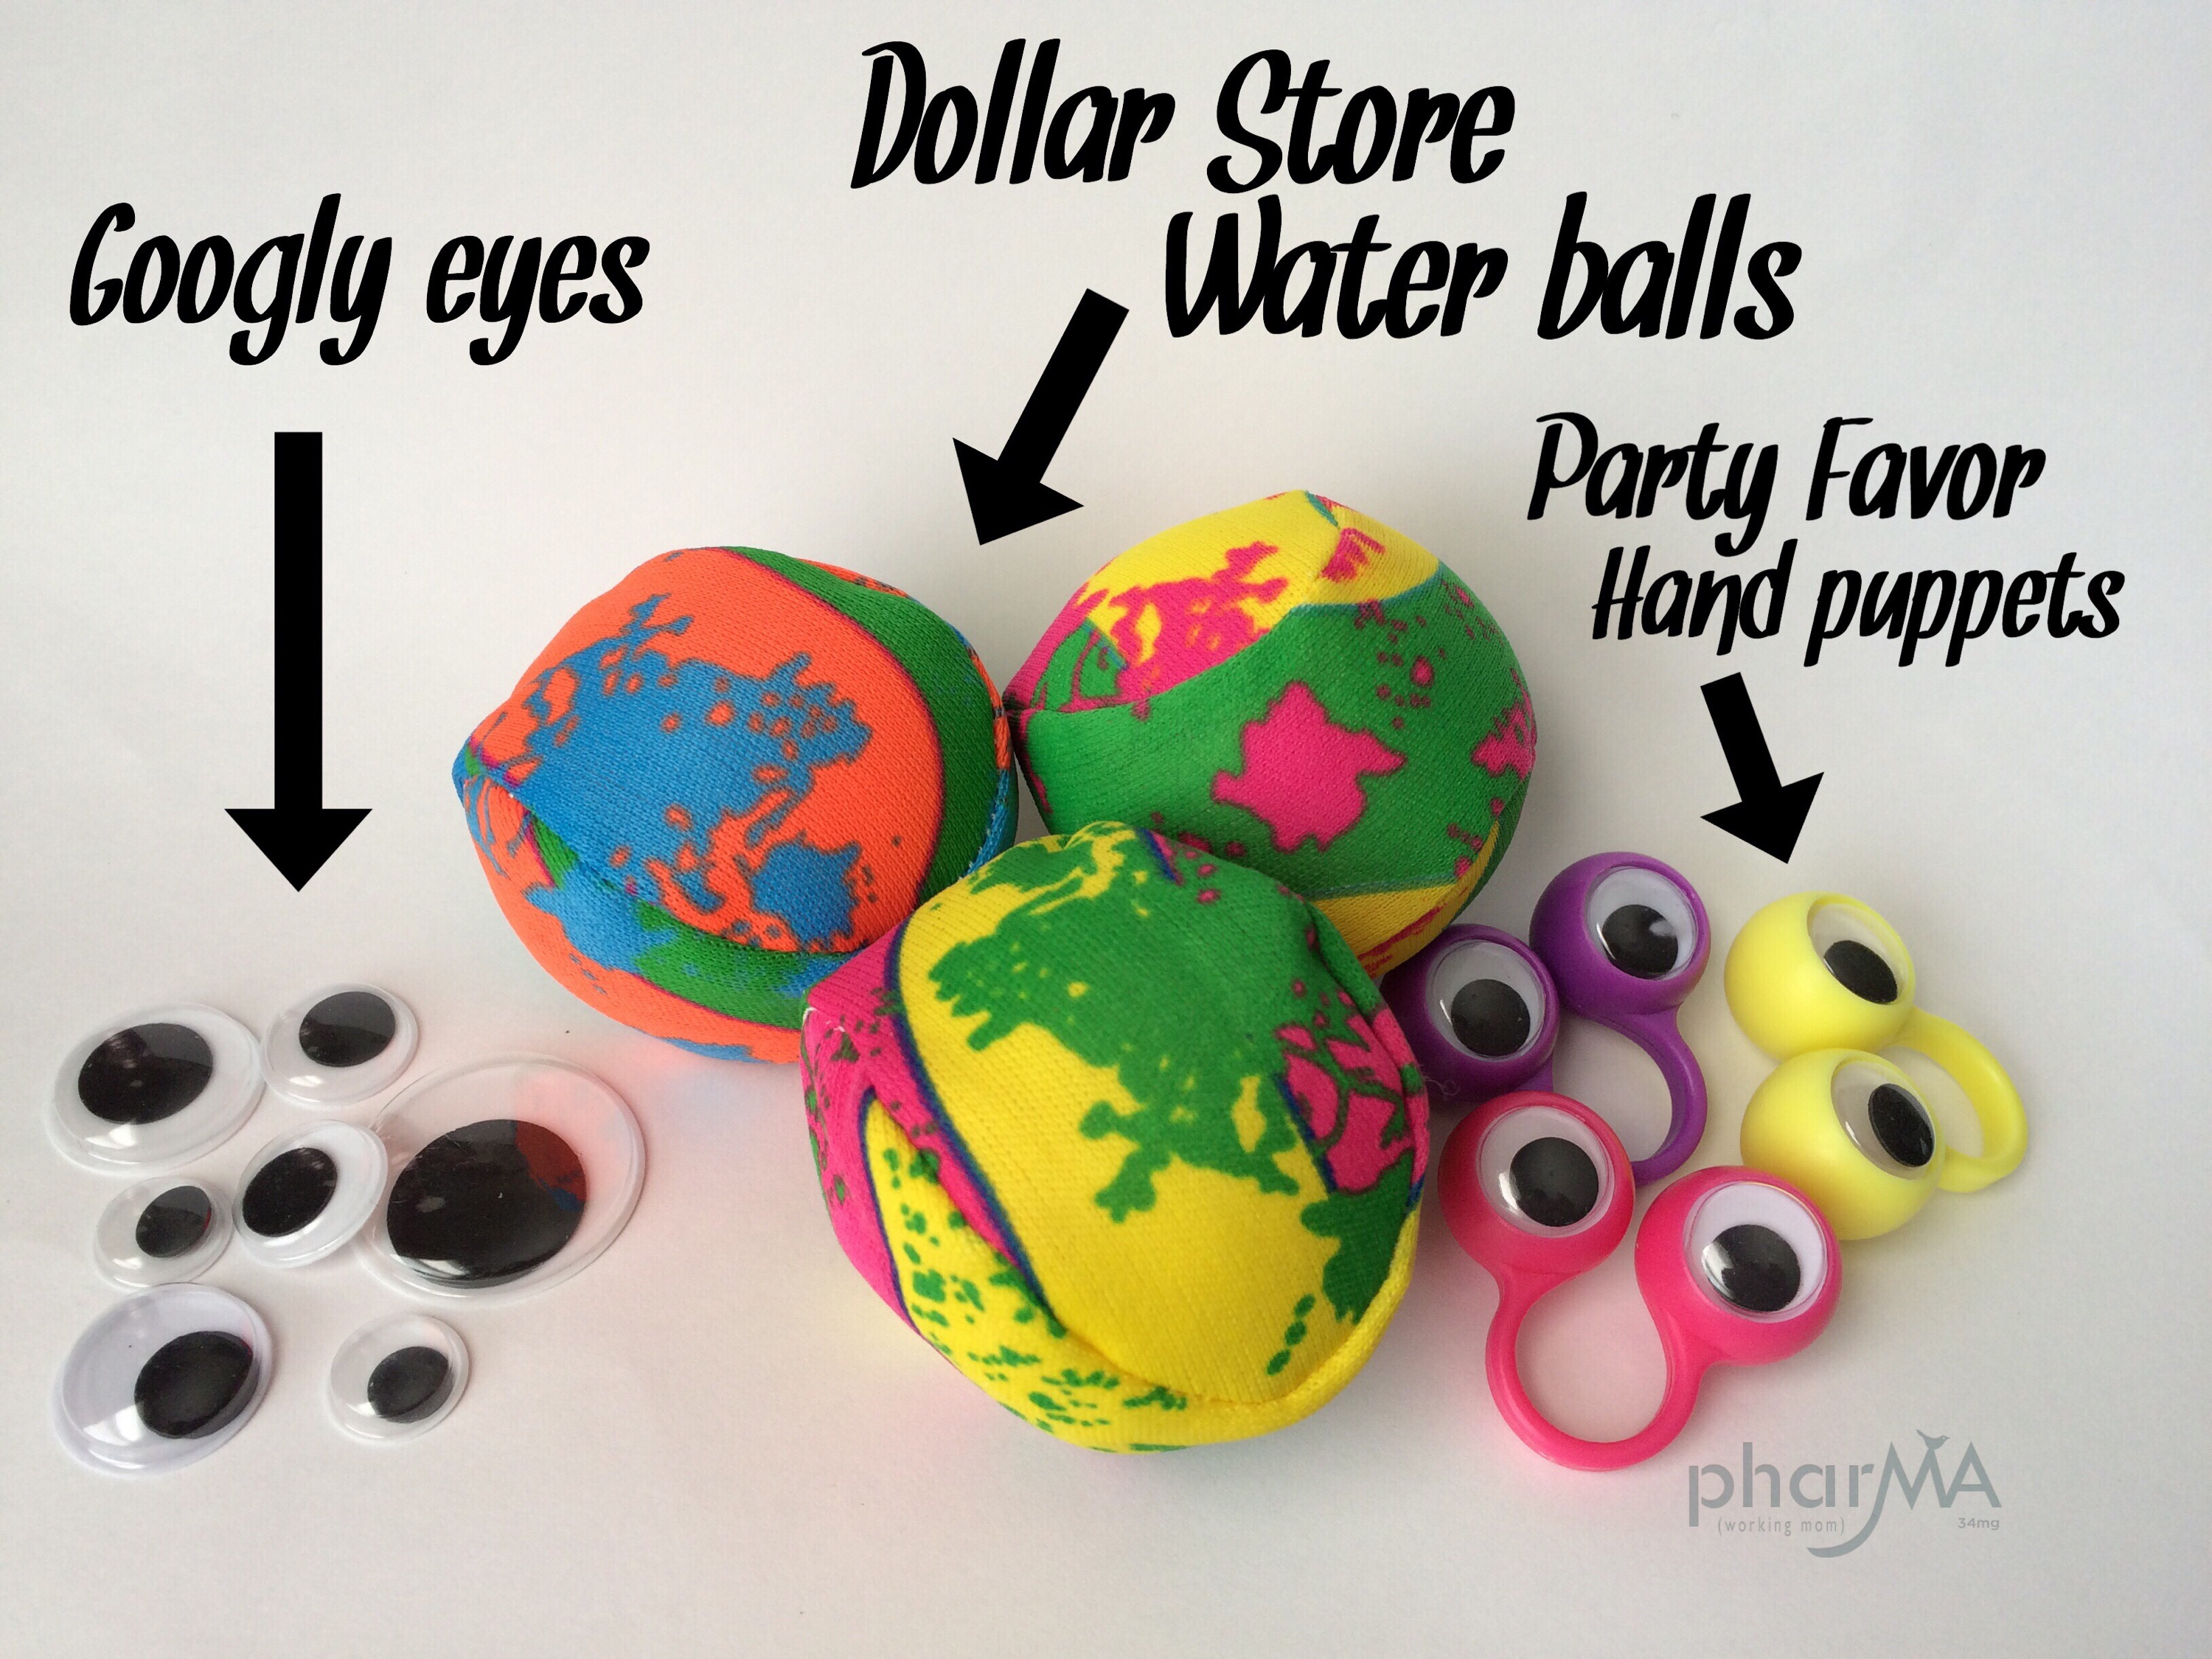 Monster Party, monster plush, stuffed monster, halloween party favor , Dollar store crafts